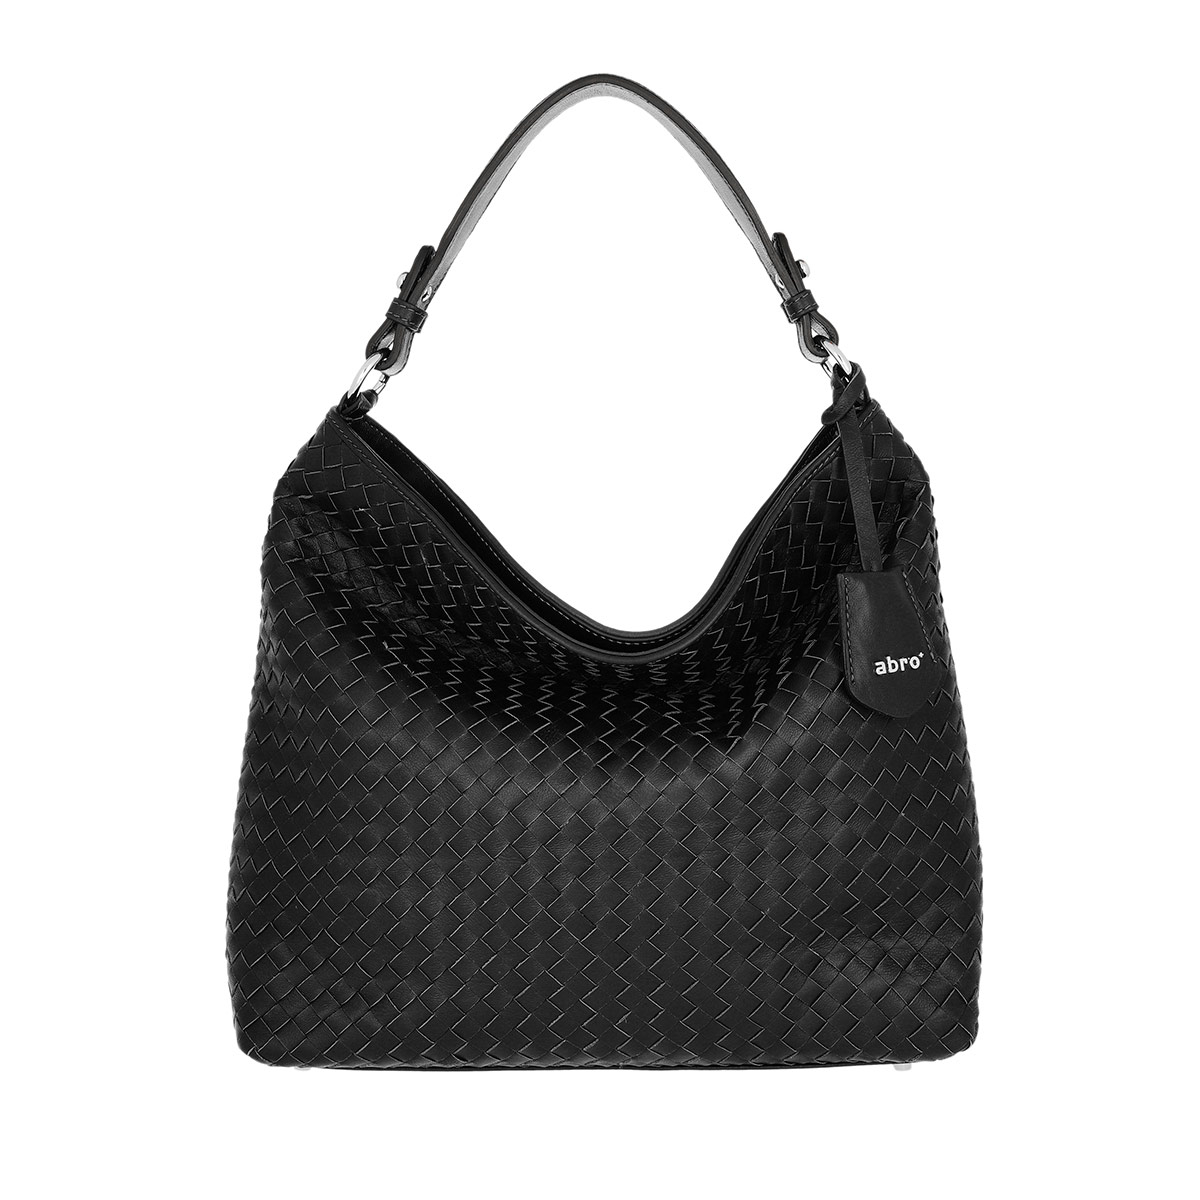 Abro Hobo Bag - Piuma Woven Hobo Bag Black/Nickel - in schwarz - für Damen